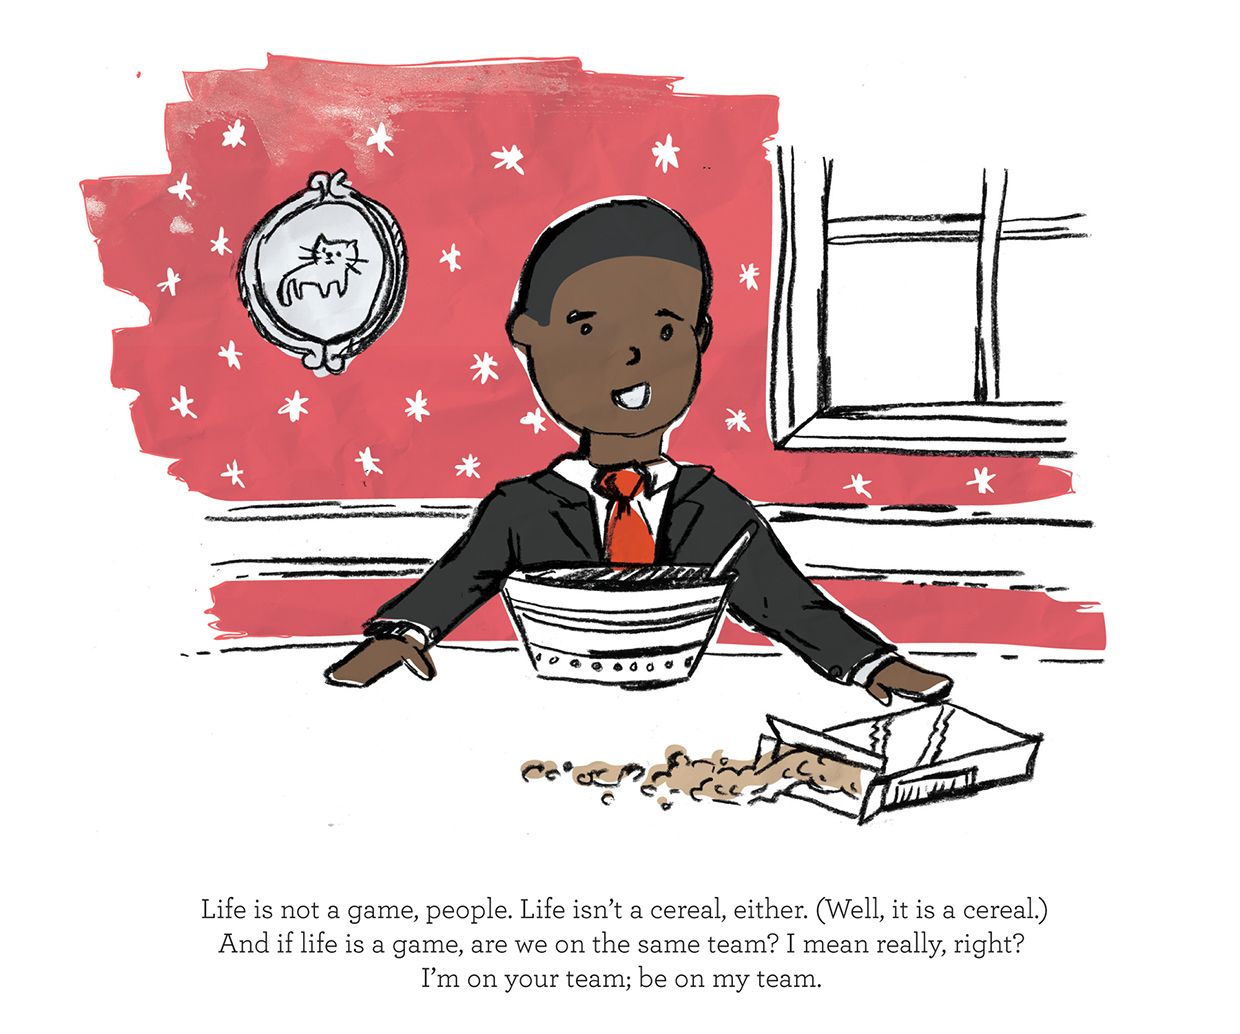 Life is not a game, people. Life isn't a cereal, either. Well it is a cereal. And if life is a game, are we on the same team? I mean really, right? I'm on your team. Be on my team. Kid president illustration pep talk.